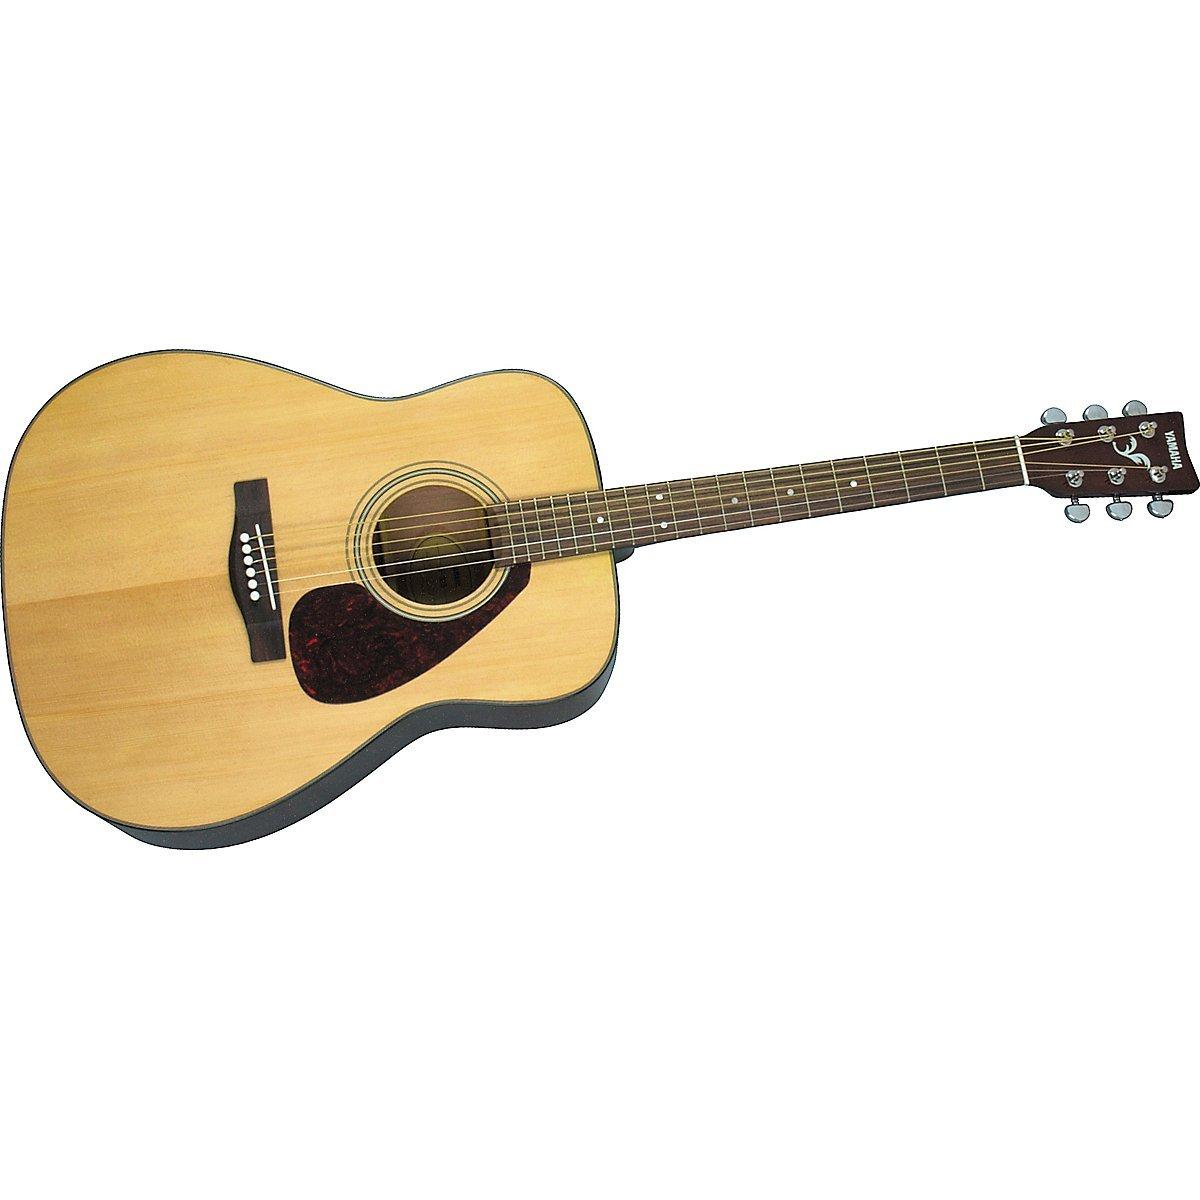 Yamaha gigmaker standard acoustic guitar w for Yamaha acoustic bass guitar